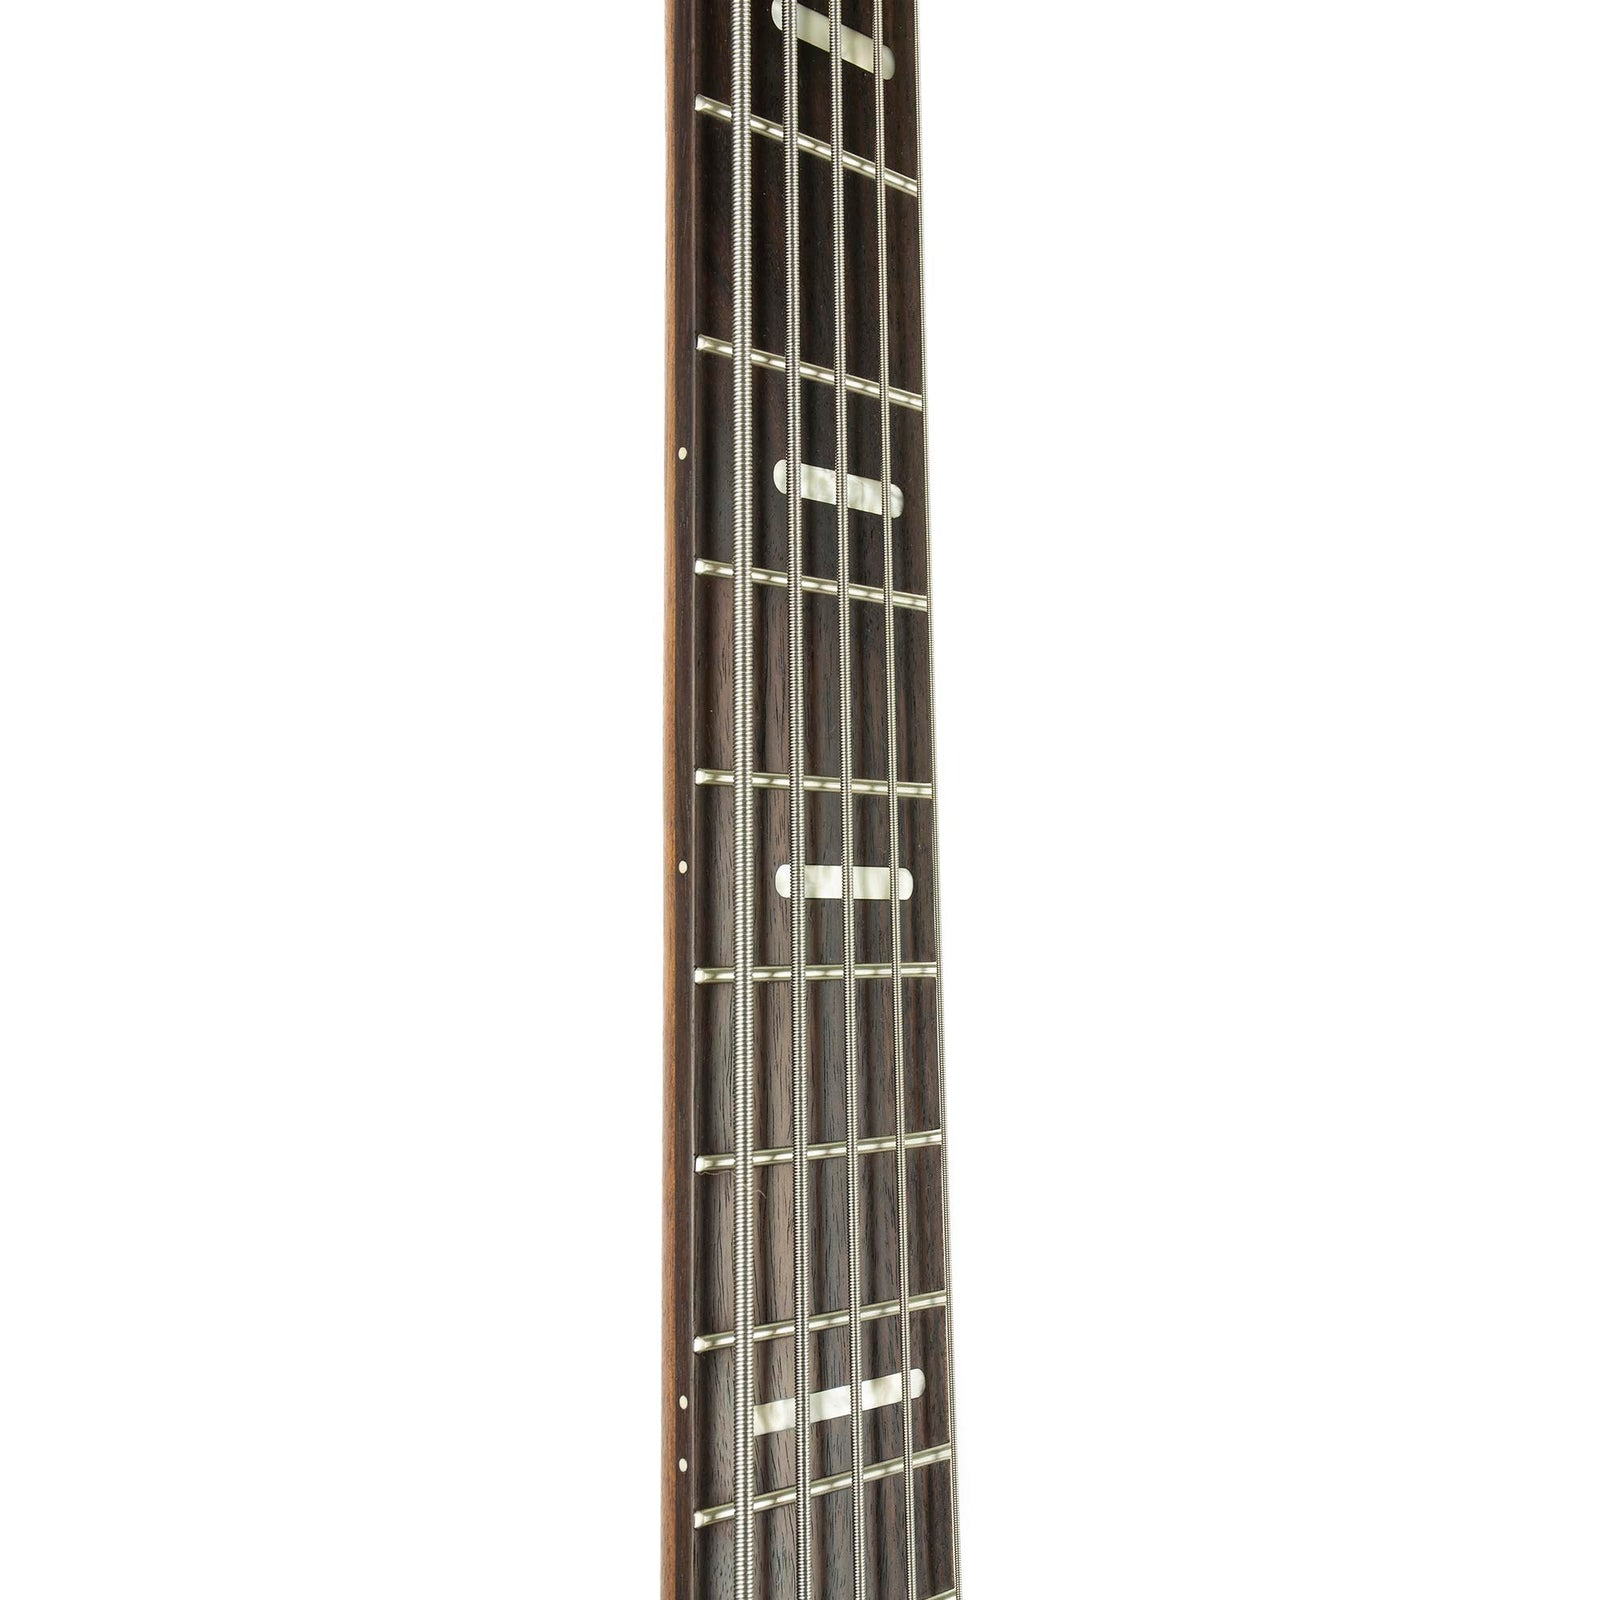 Ibanez Bass Workshop Series 5-String Fanned Fret Bass SRFF805 - Walnut Flat - Used - Image: 7